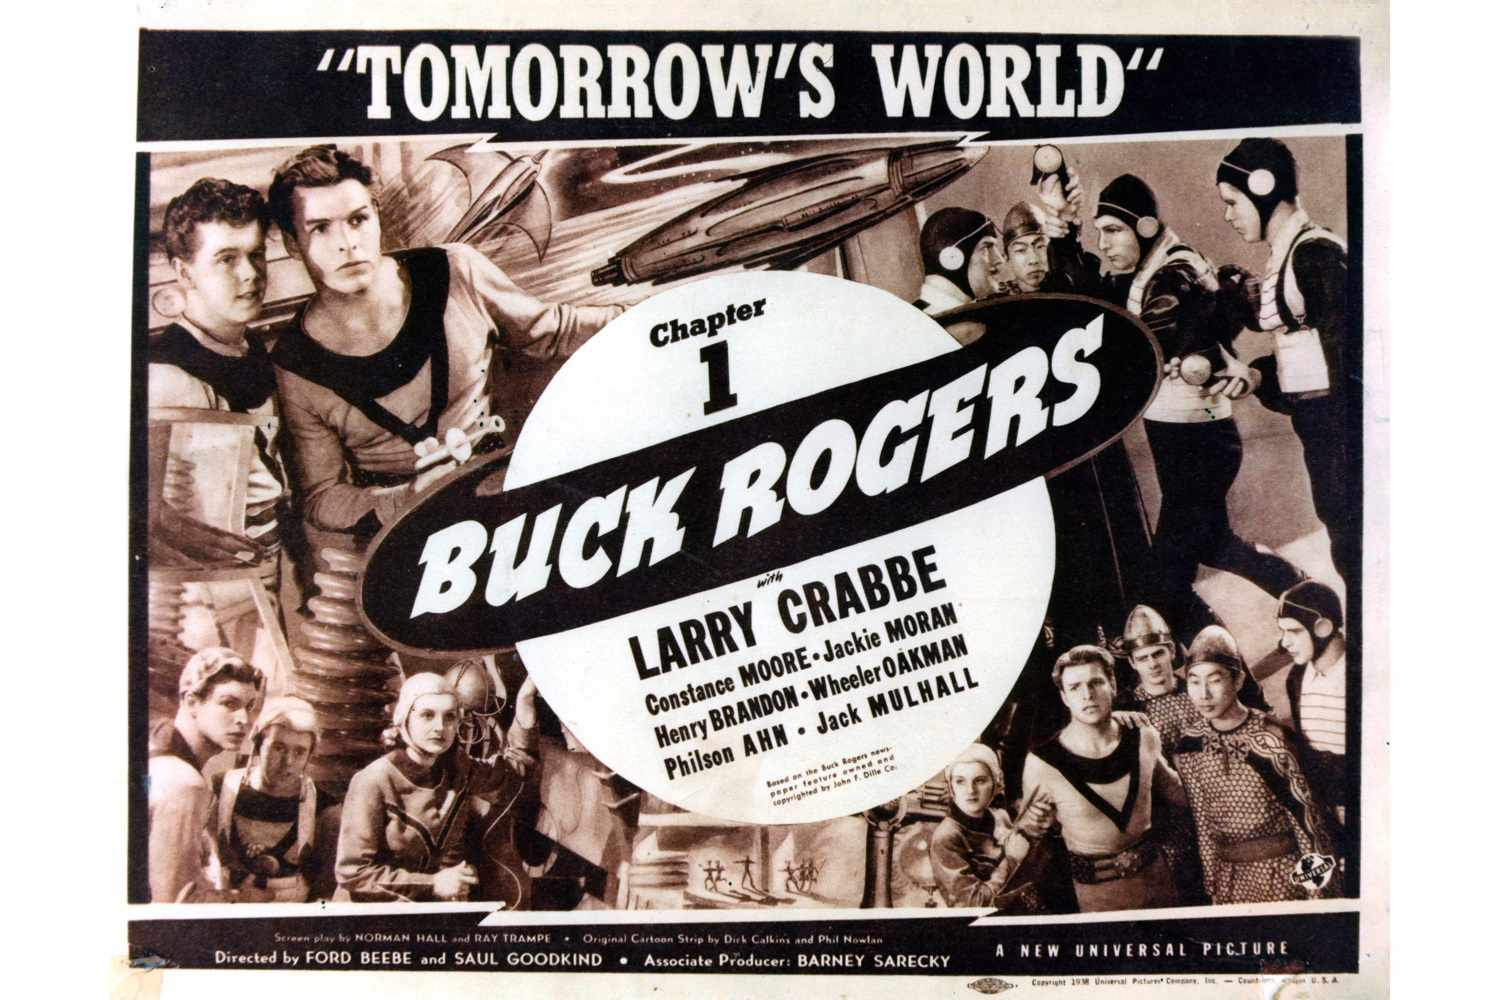 A poster for the 1939 film serial 'Buck Rogers'